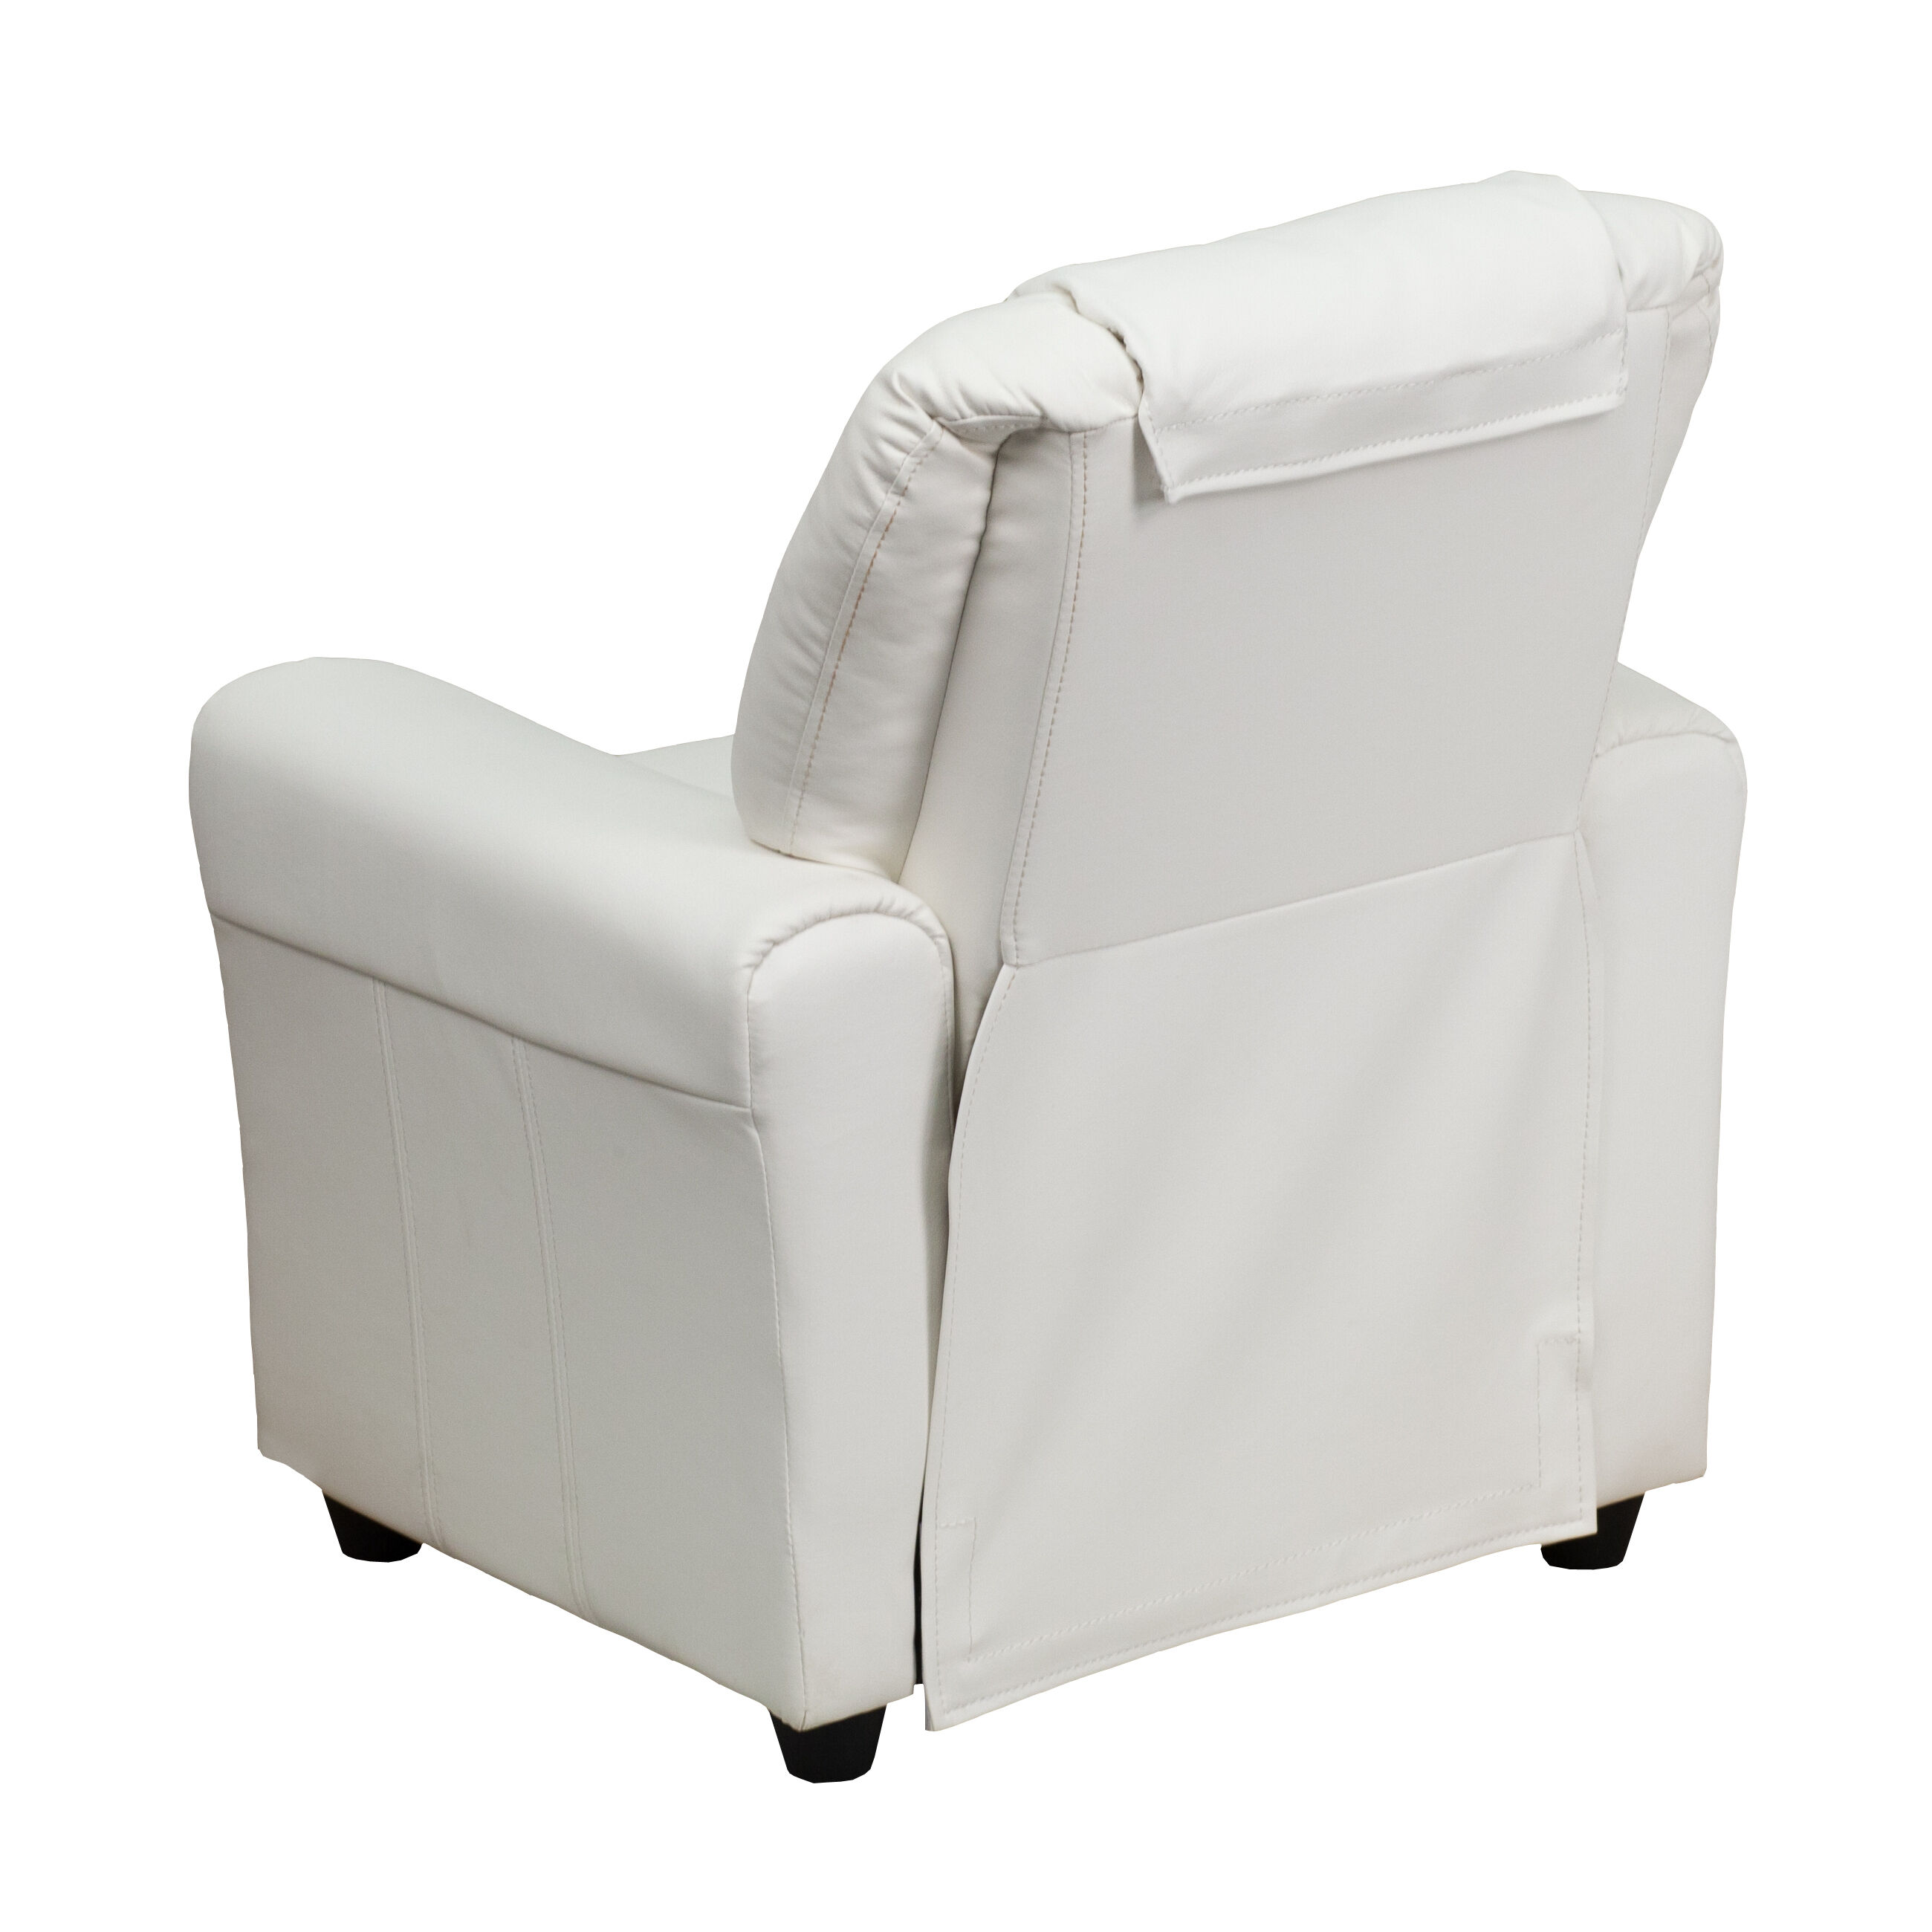 Our Contemporary White Vinyl Kids Recliner With Cup Holder And Headrest Is  On Sale Now.